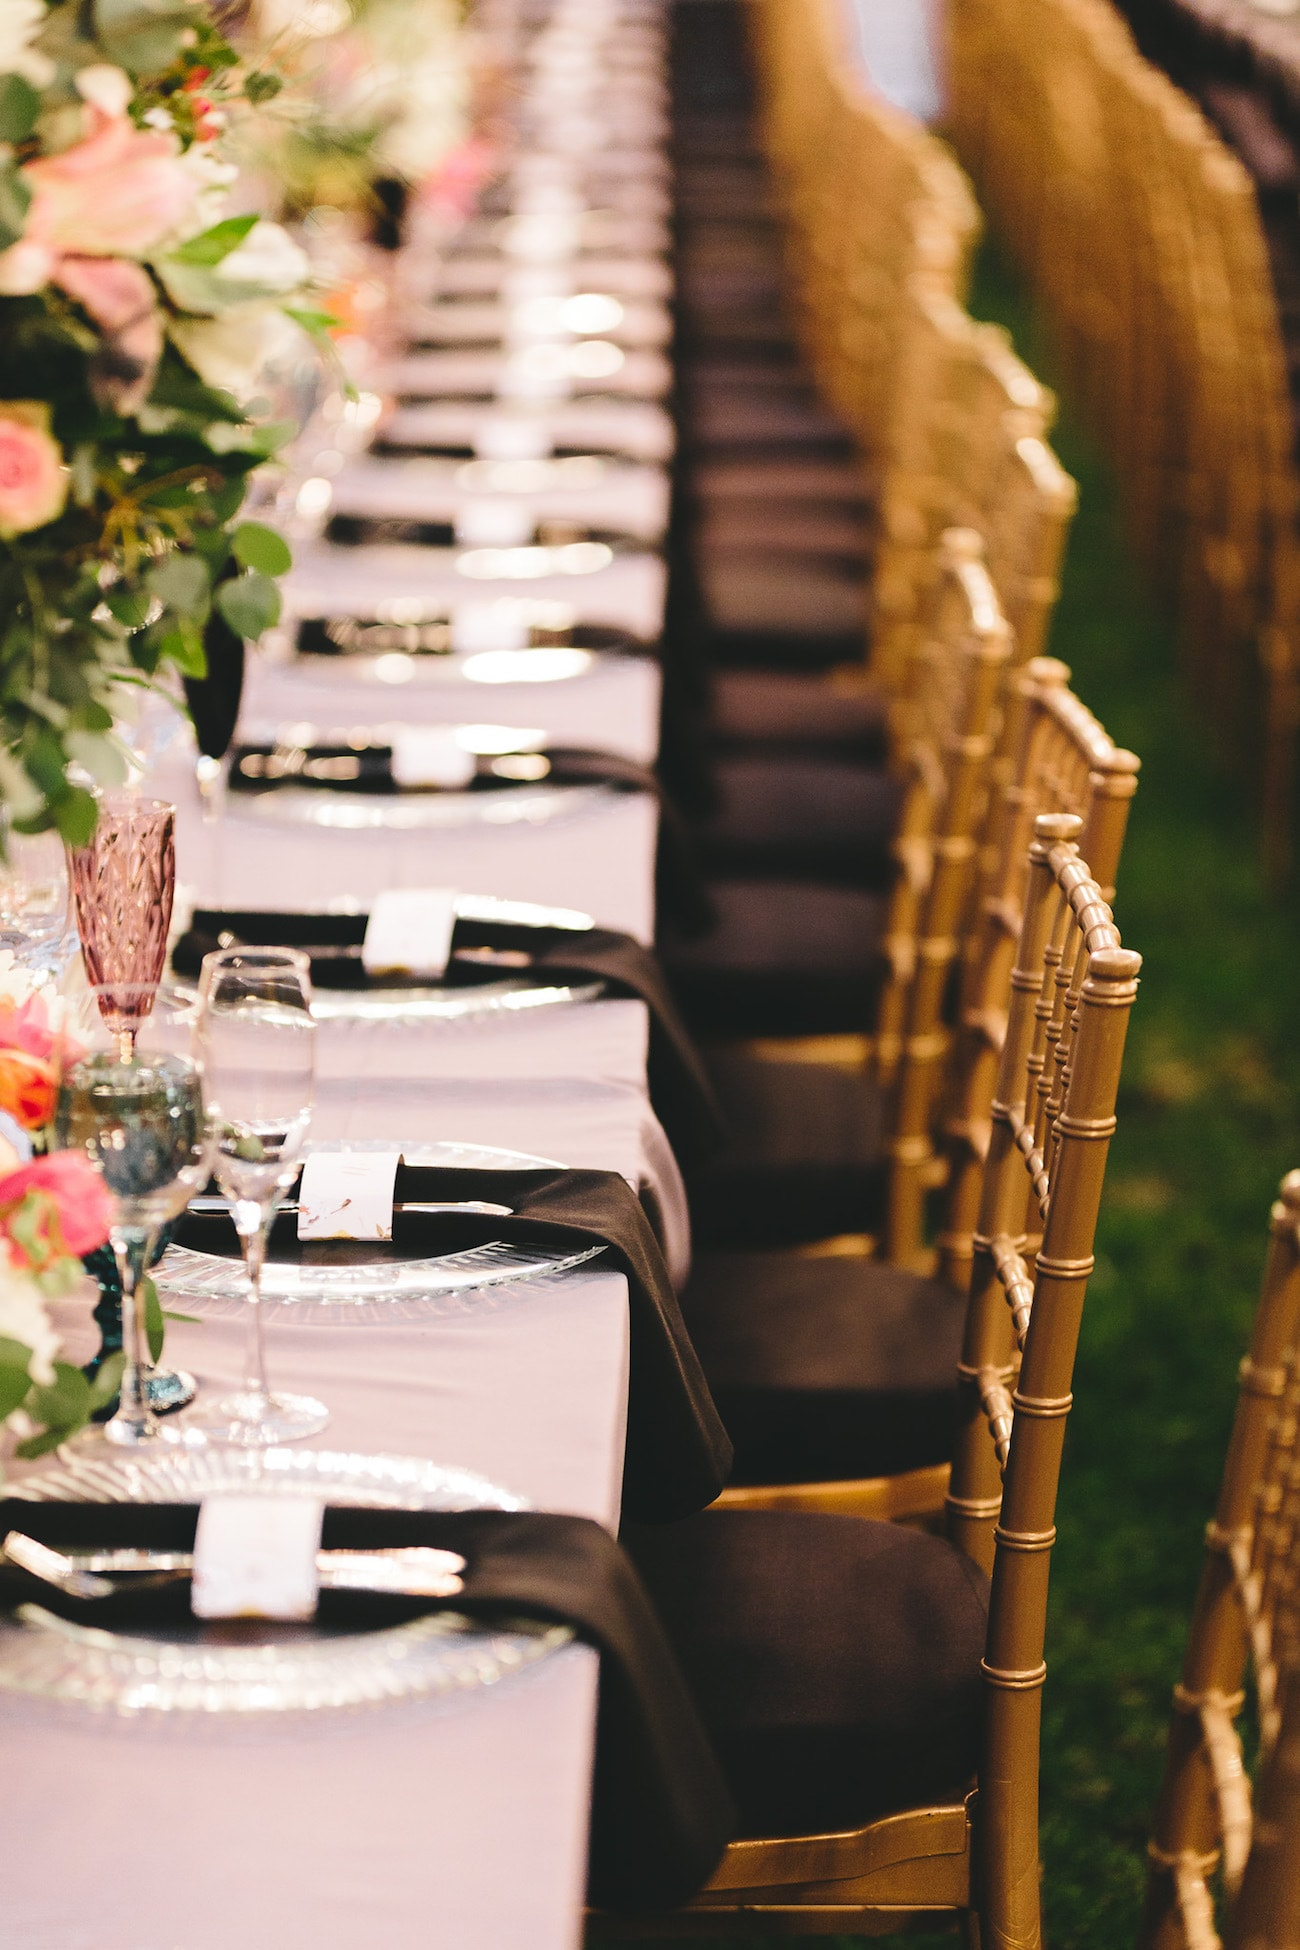 Table Decor with Black Napkins and Colorful Glassware   Credit: Charlie Ray Photography